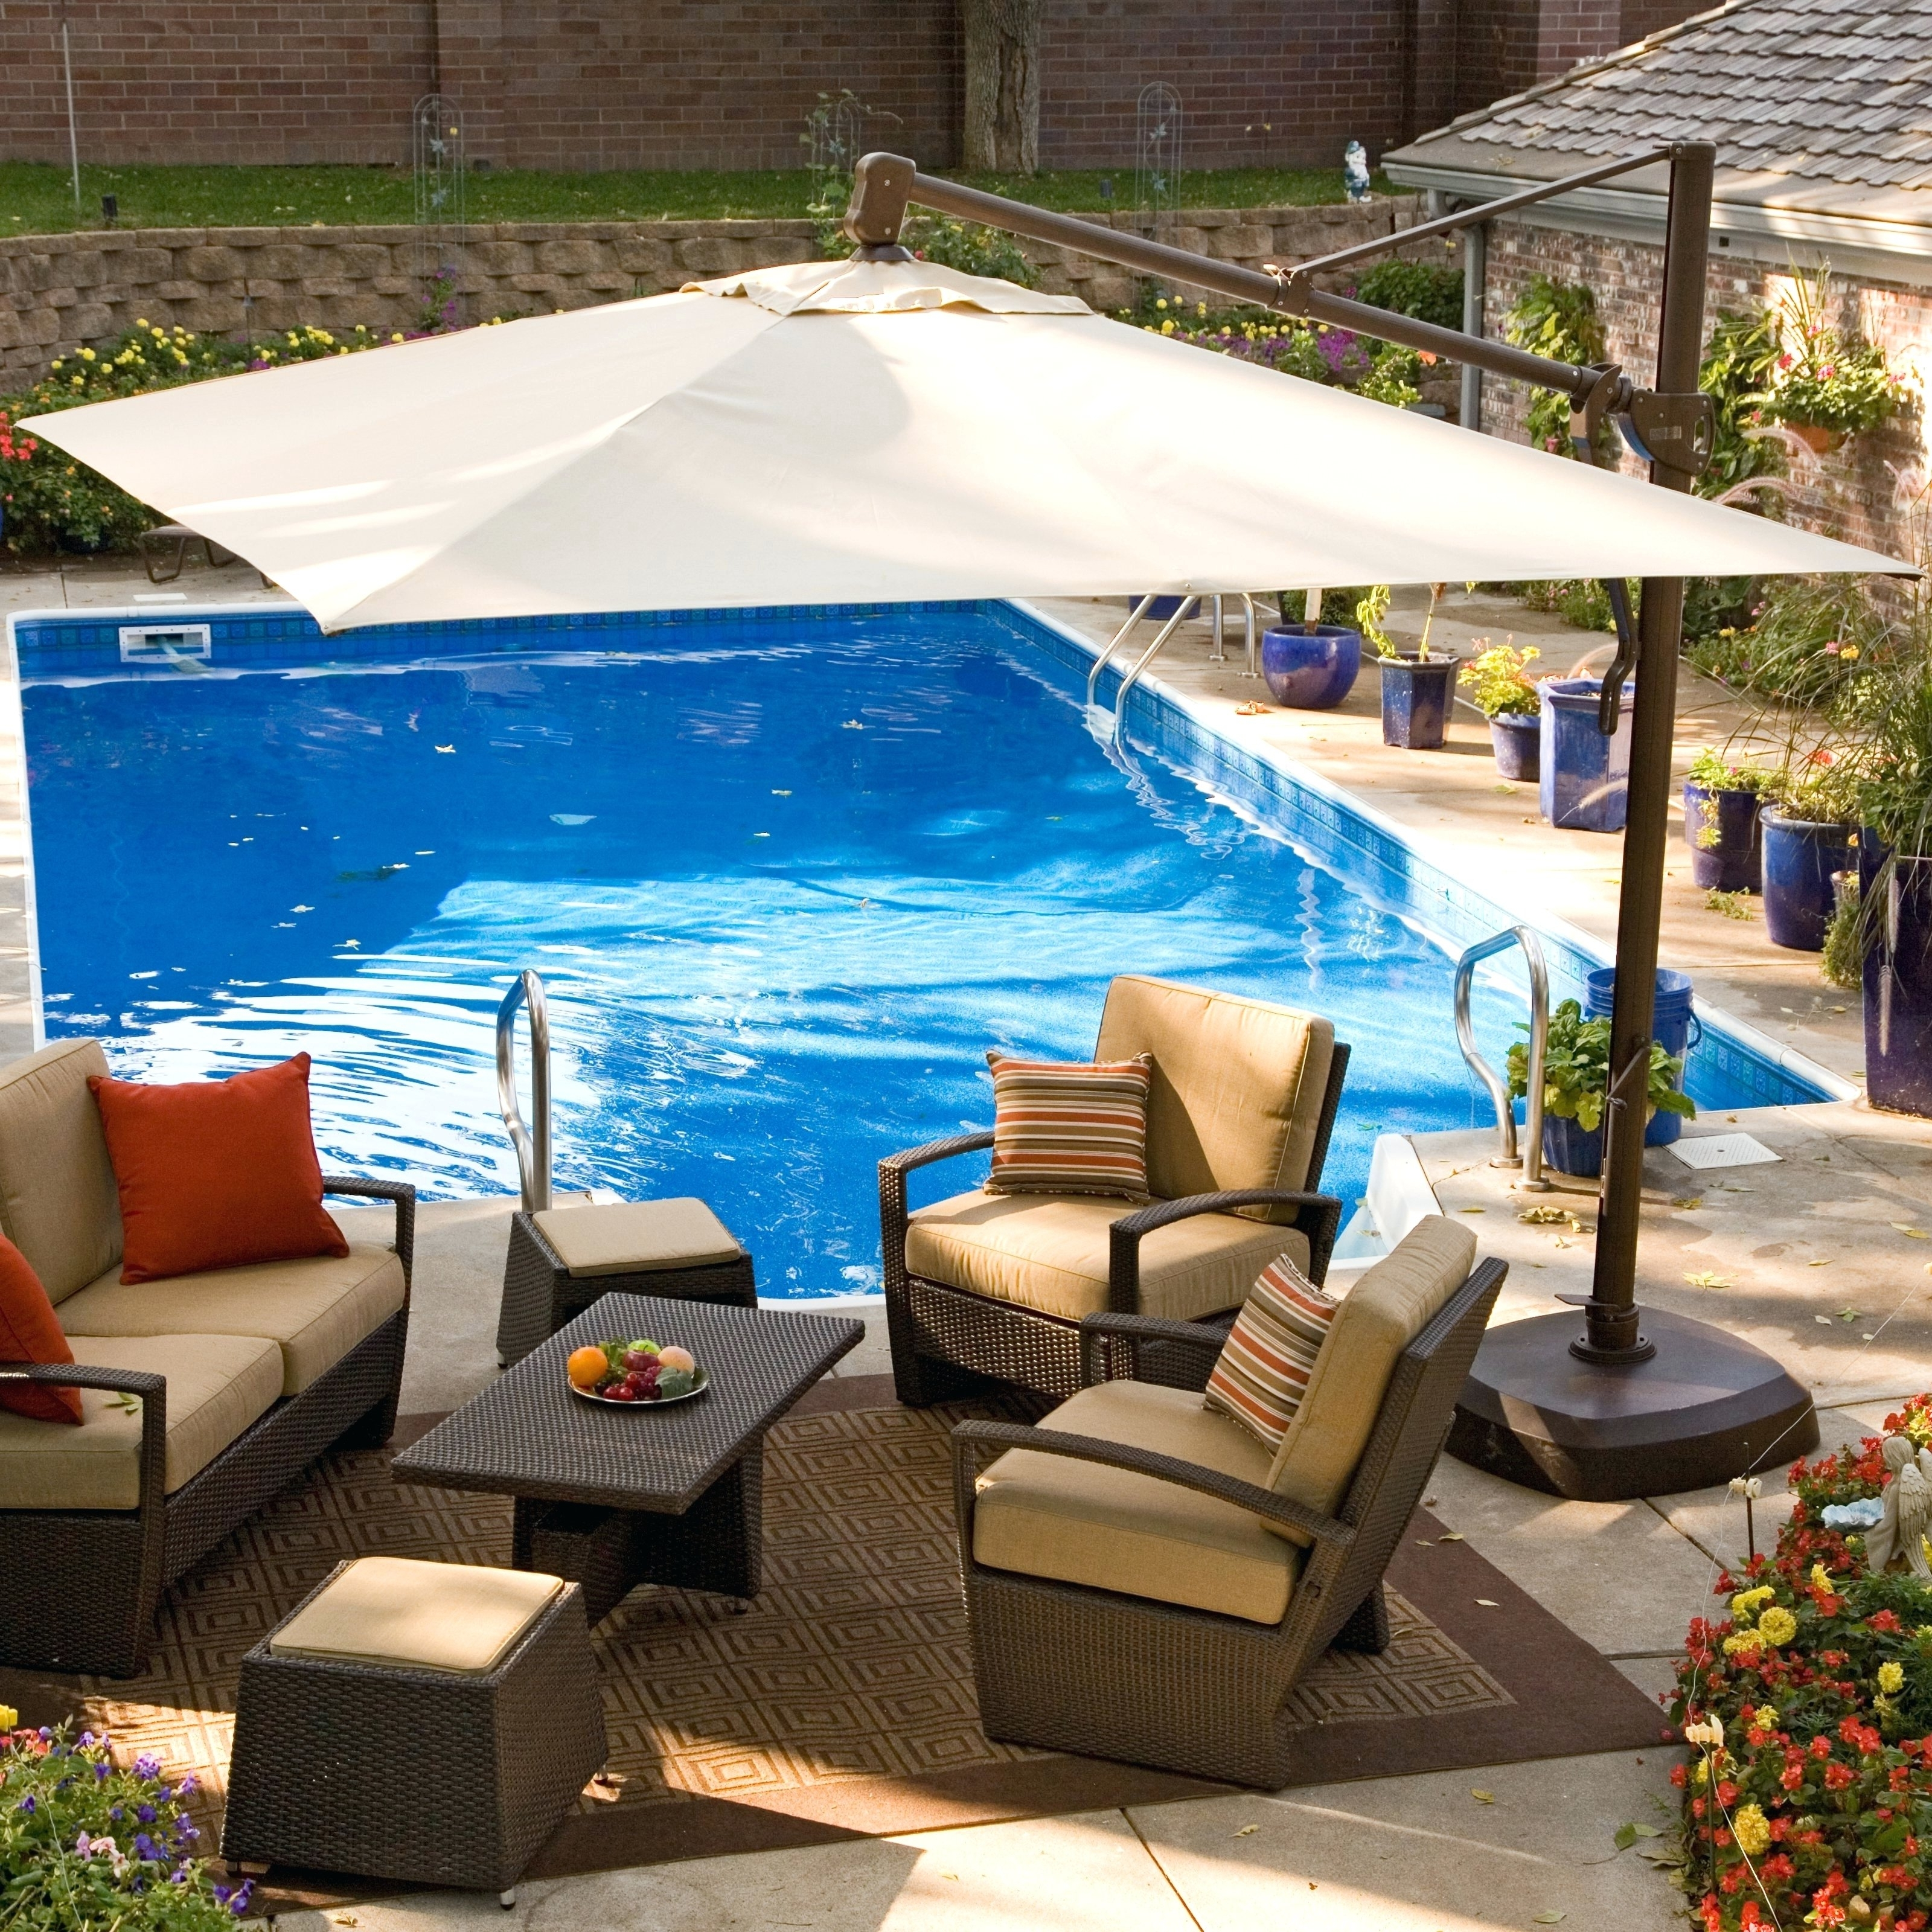 Offset Rectangular Patio Umbrellas Pertaining To Latest Patio Ideas ~ 10 Foot Wide Rectangular Offset Patio Umbrella With (Gallery 16 of 20)